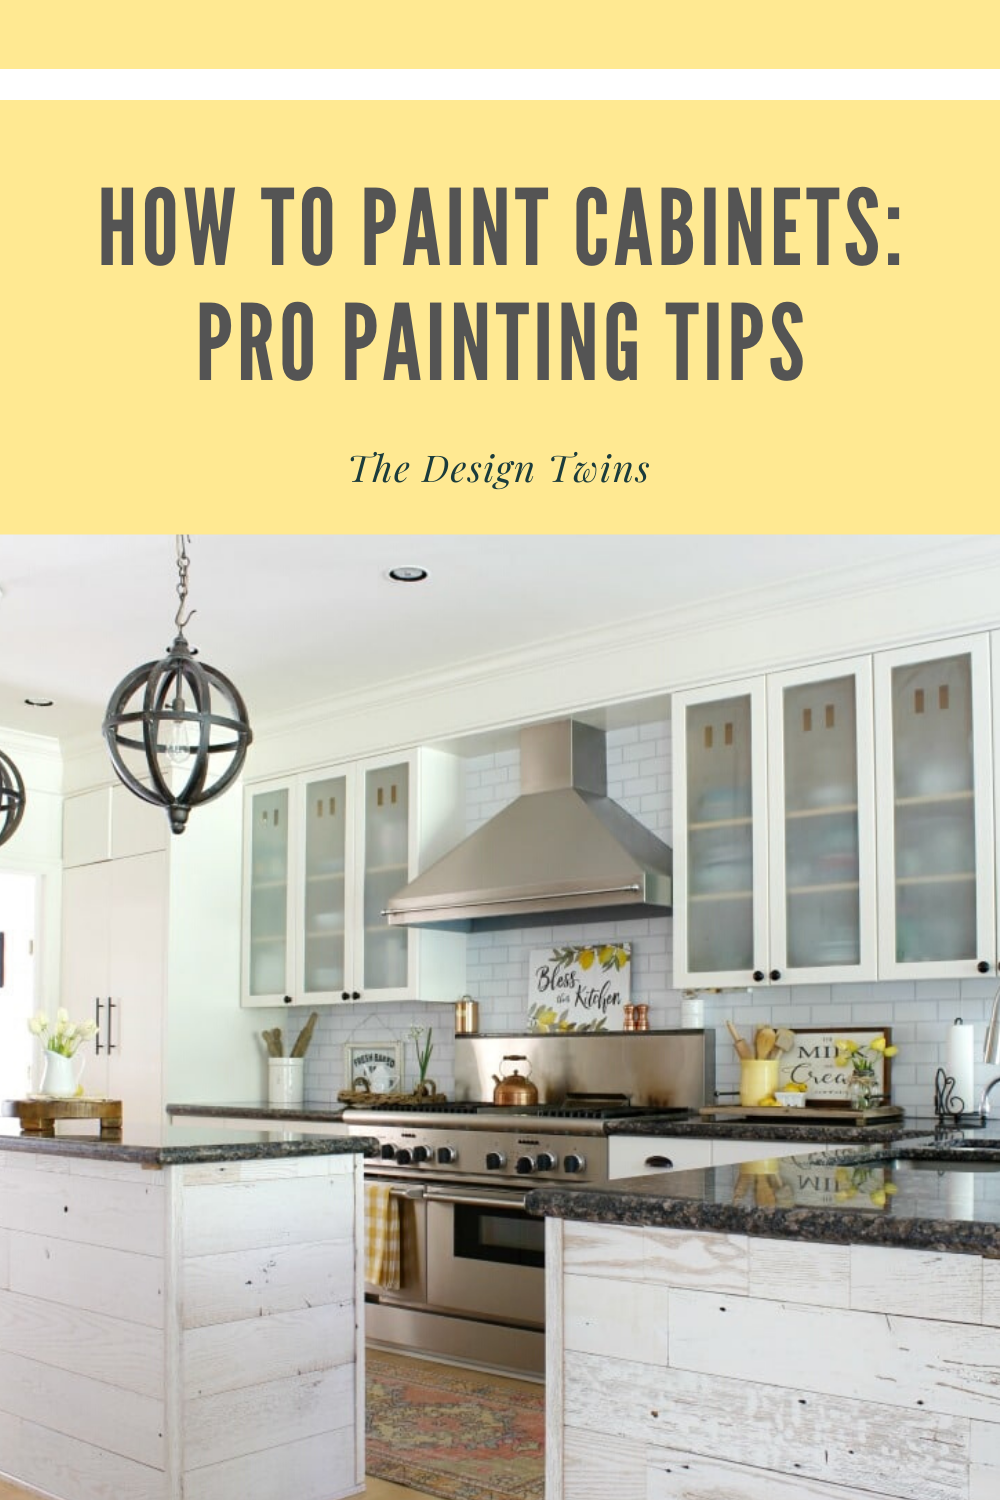 How To Paint Cabinets Pro Painting Tips The Design Twins In 2020 Paint Kitchen Cabinets Like A Pro Home Goods Decor Painting Kitchen Cabinets